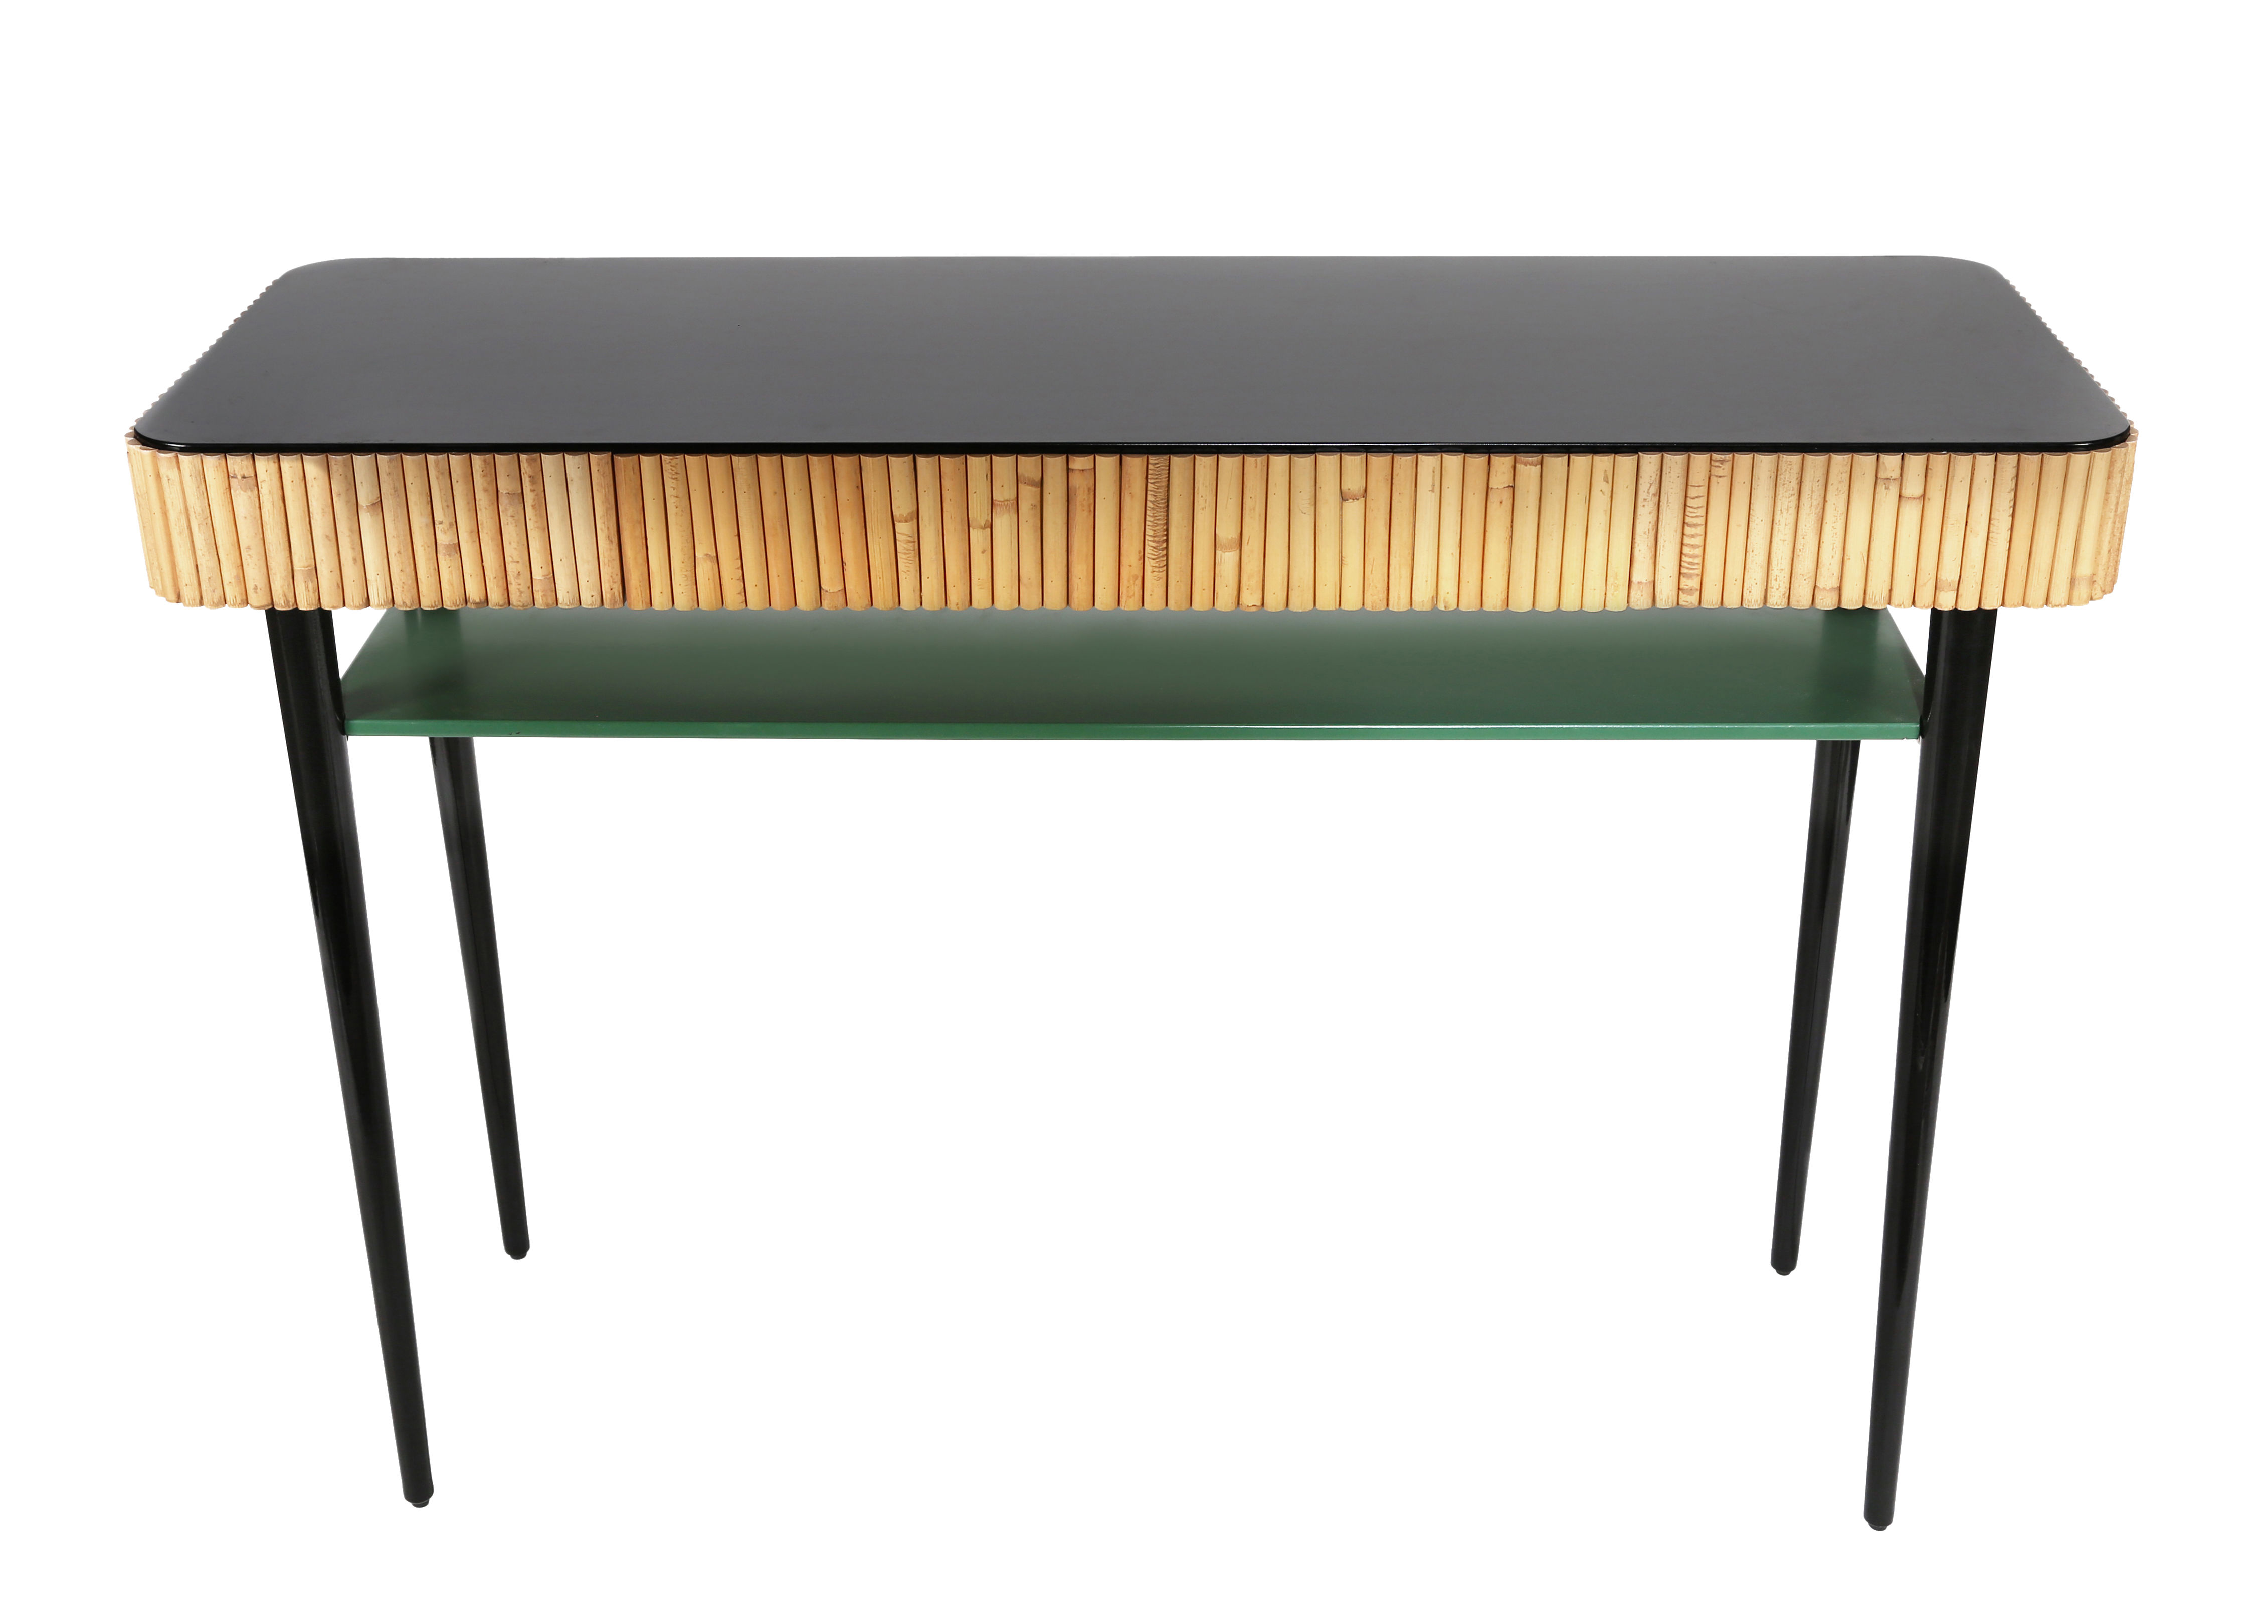 Furniture - Console Tables - Riviera Console - / Rattan - Drawer by Maison Sarah Lavoine - Black & green / Natural rattan - Lacquered wood, Natural rattan